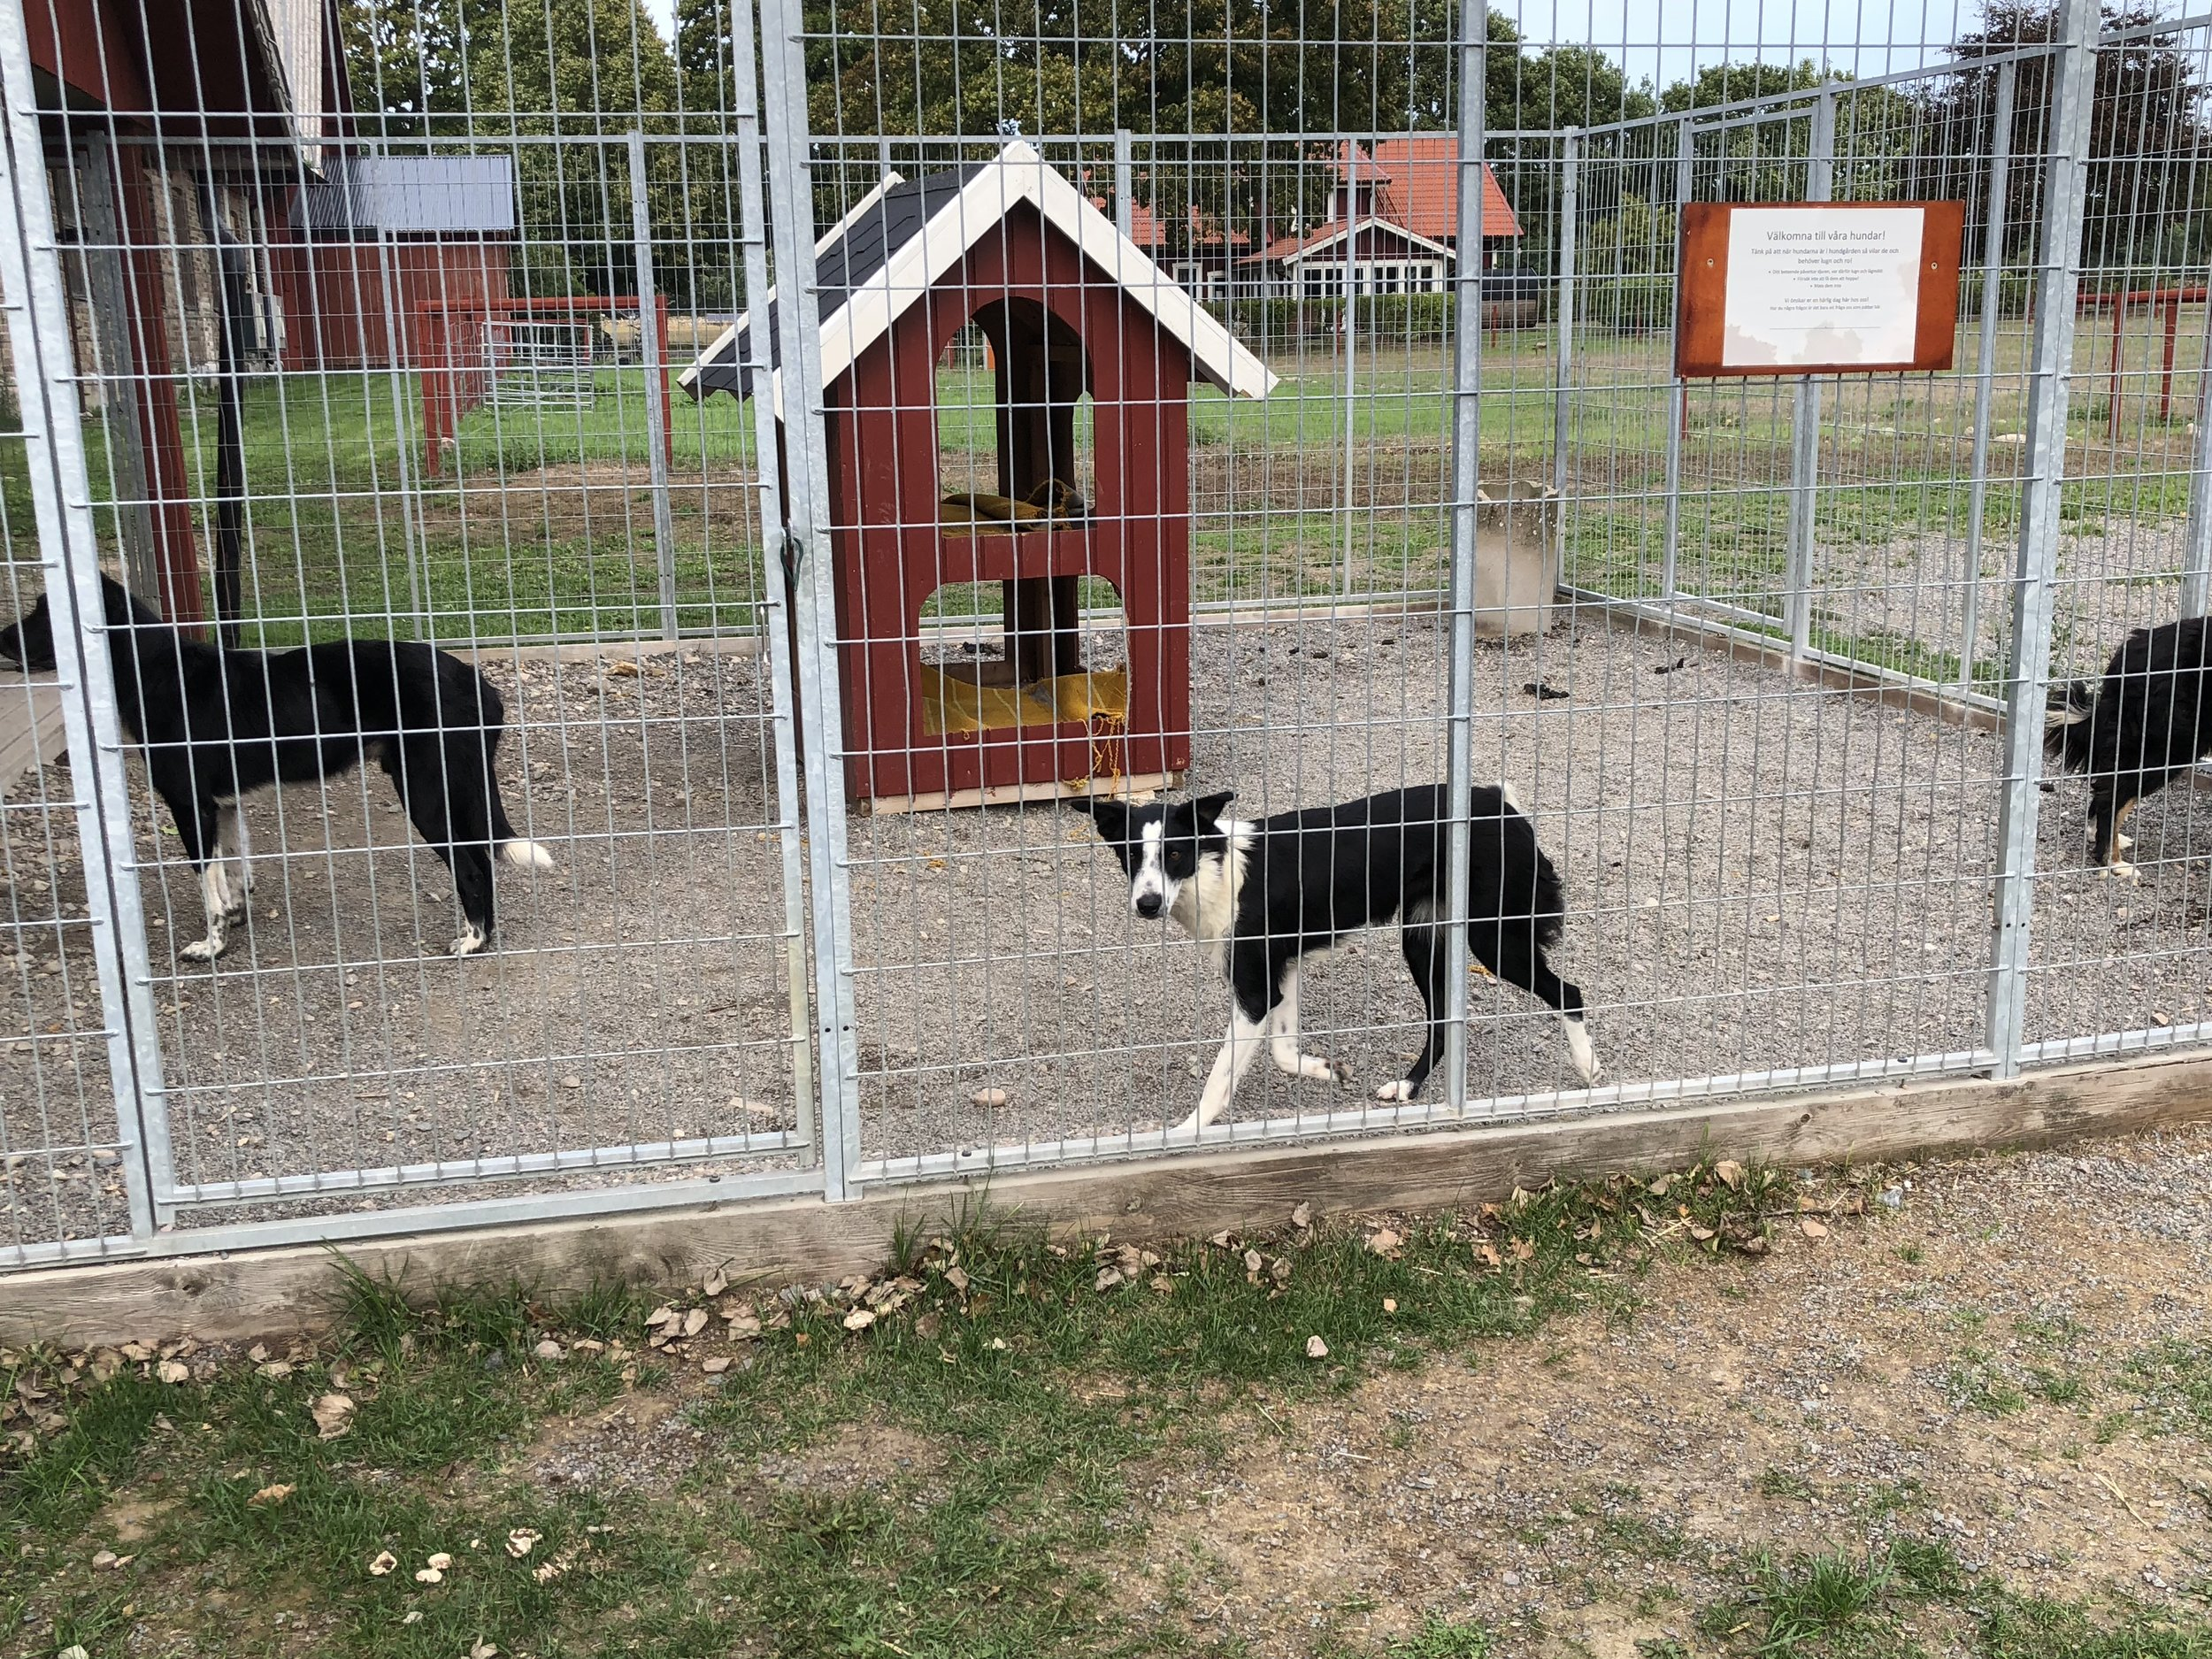 Probably the coolest thing here was the border collies, whom we saw out in the fields, herding the sheep